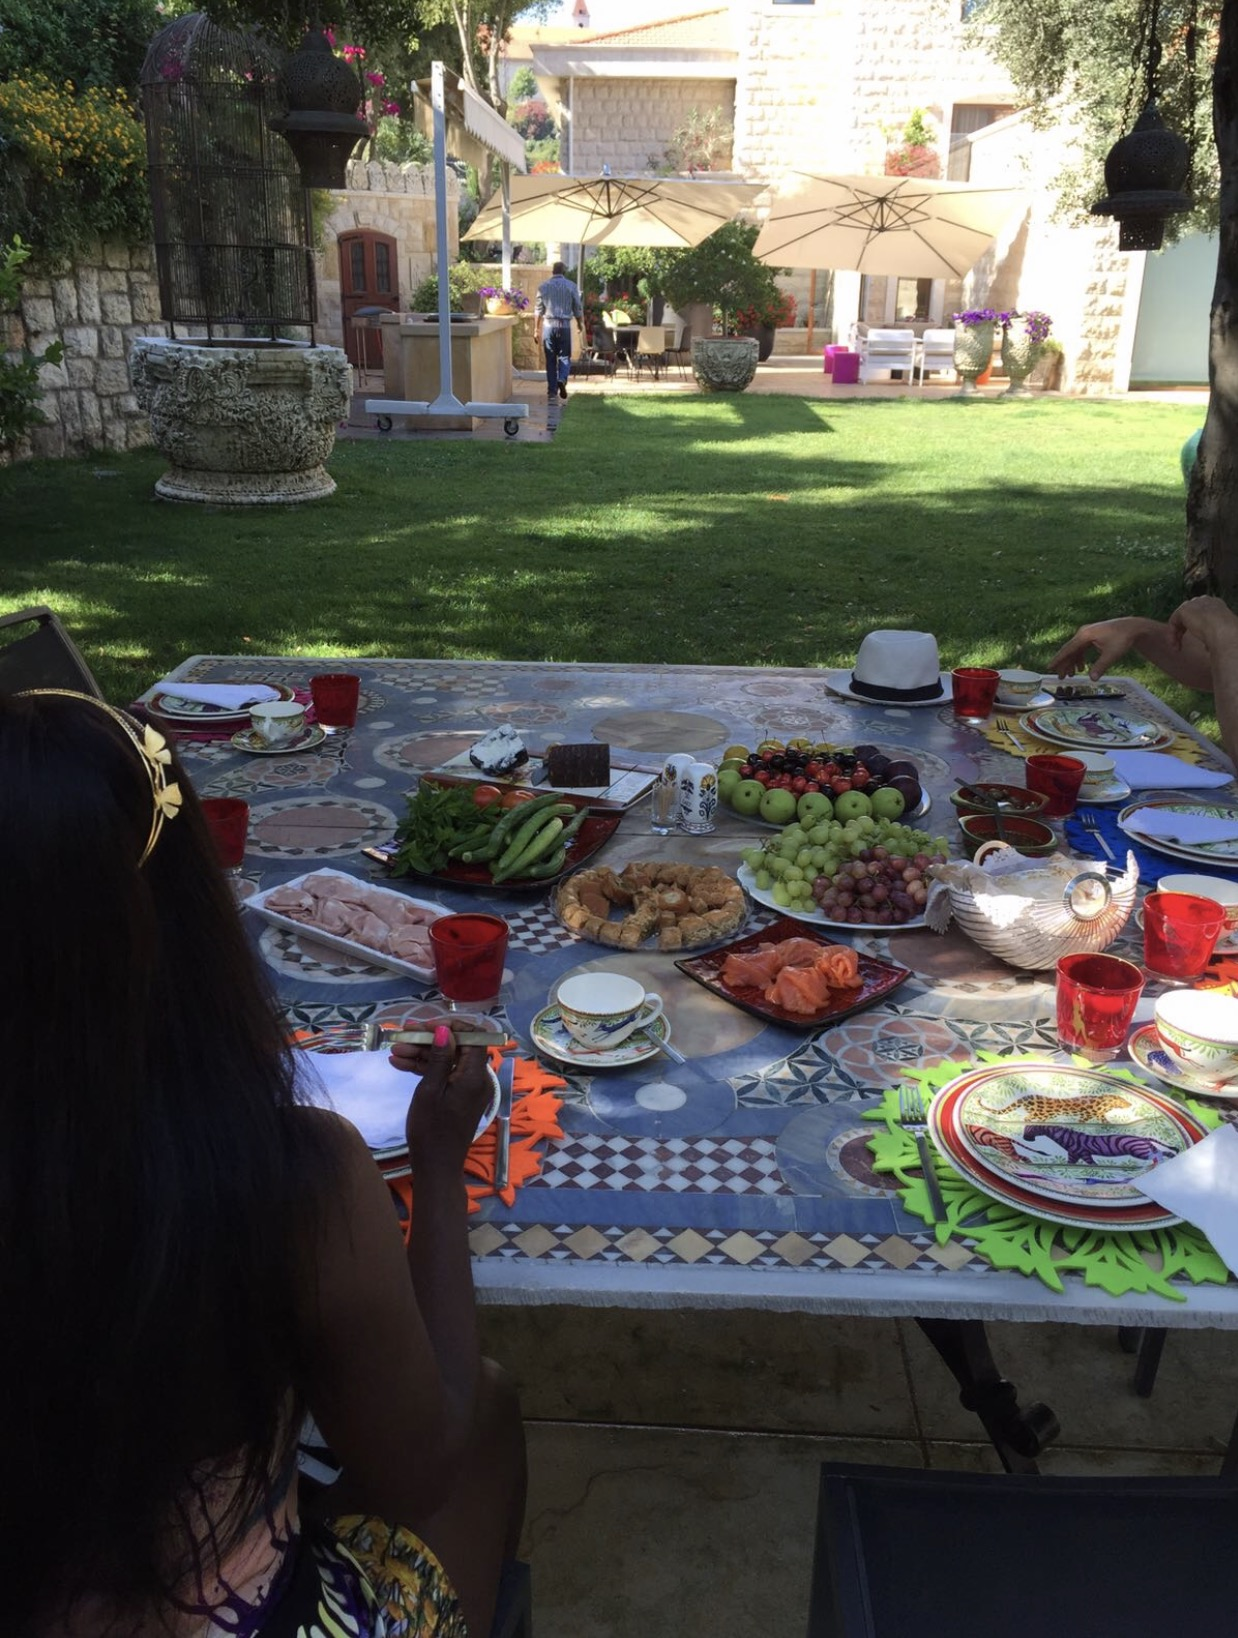 A feast of traditional Delicious Lebanese cuisine for breakfast by ysclife.com